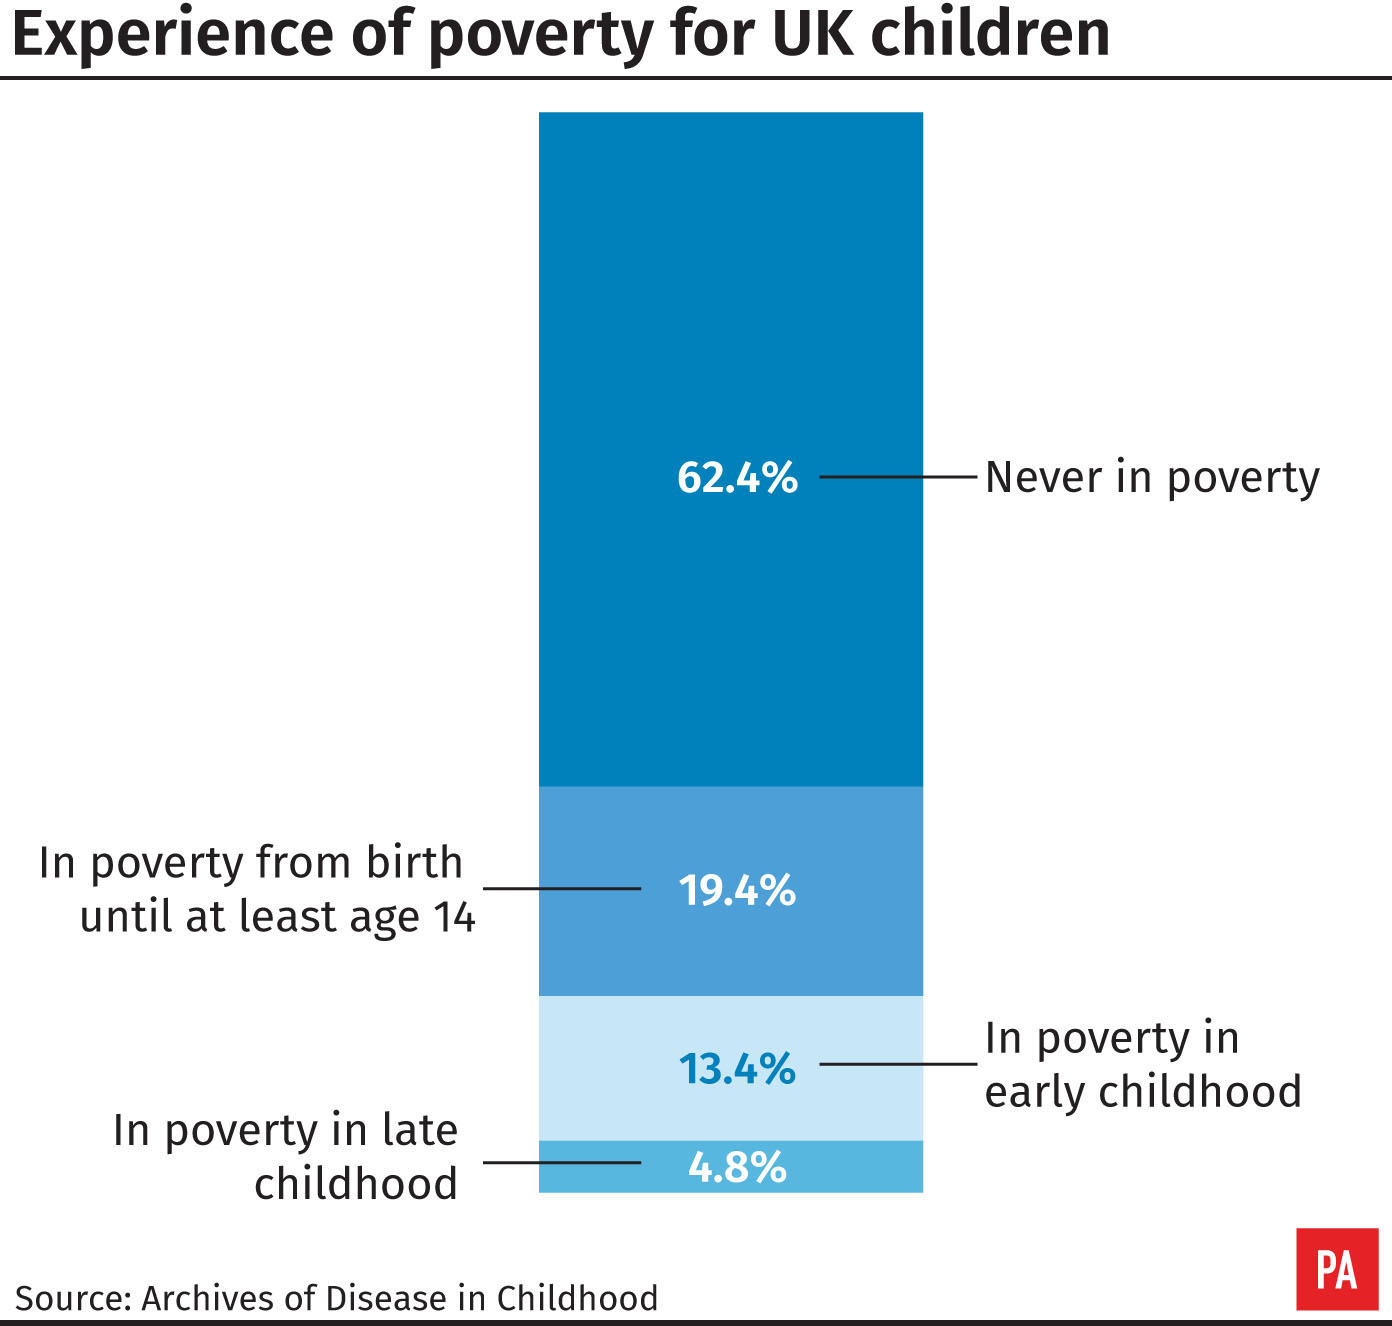 Experience of poverty for UK children